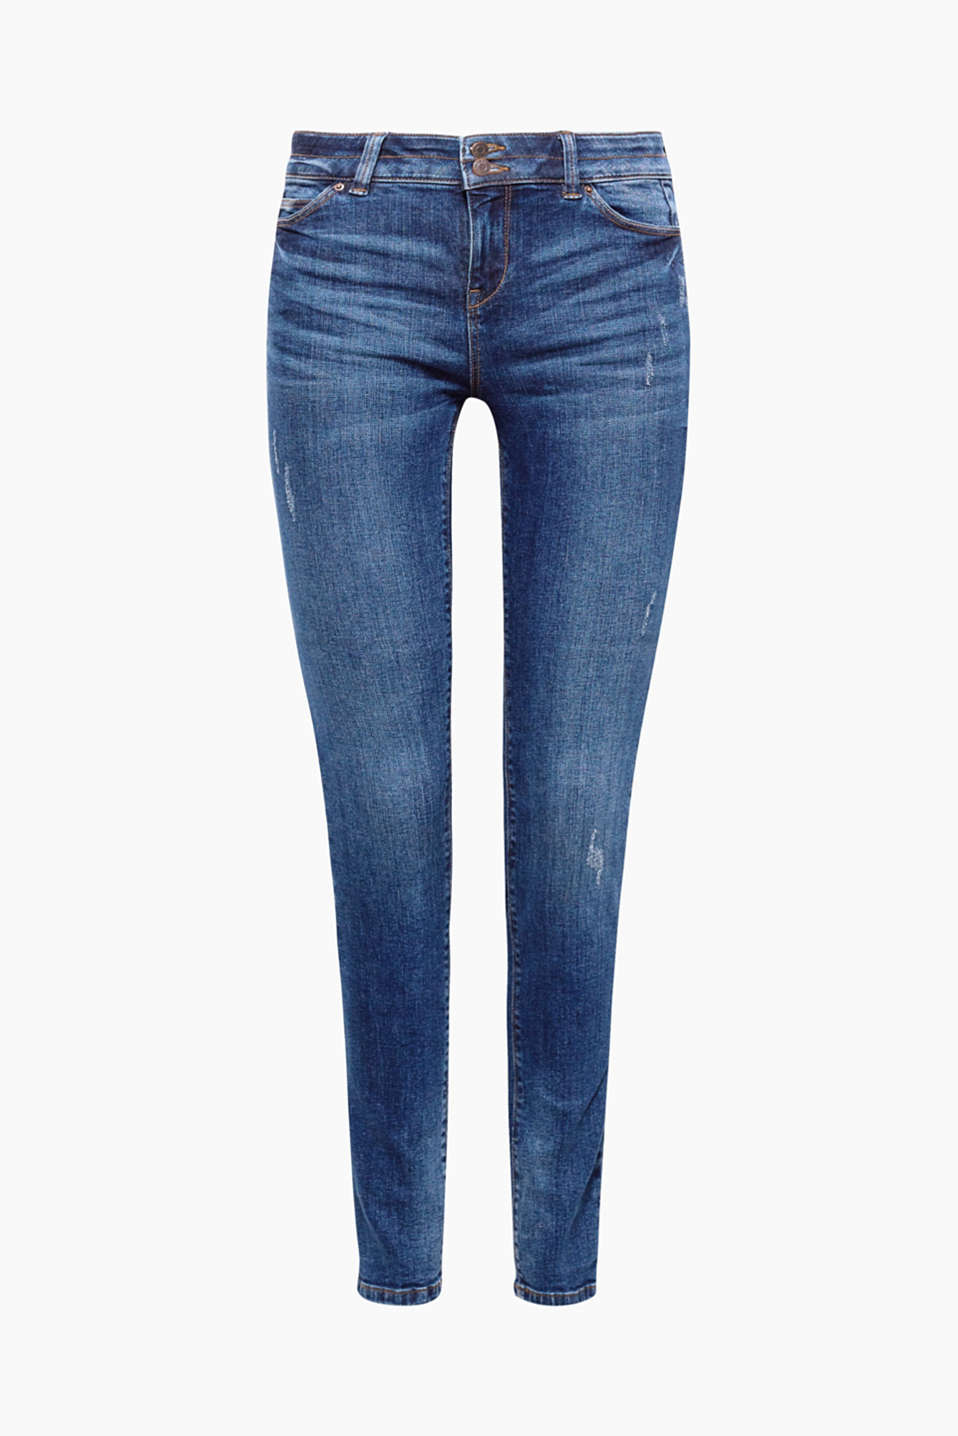 These casual jeans with subtle vintage effects and a two-button waistband offers new details and fabulous comfort.